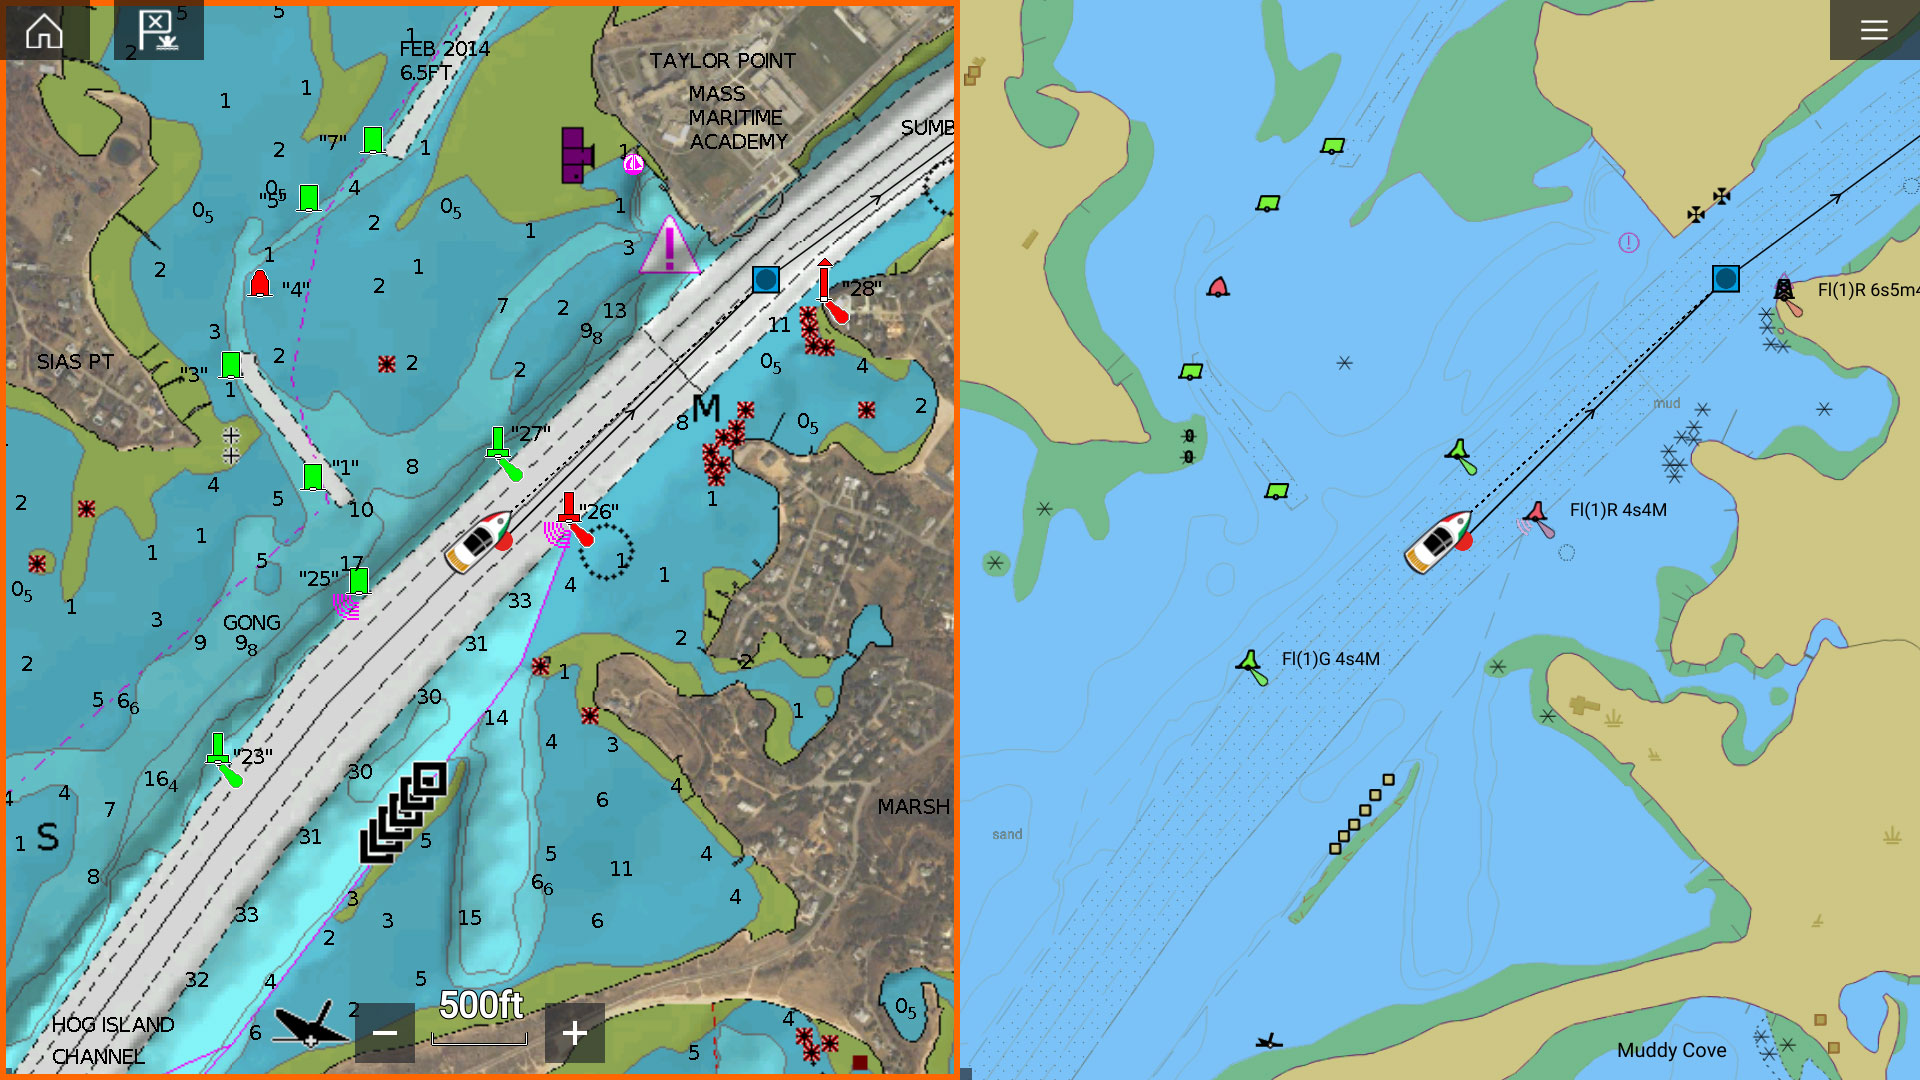 LightHouse 3.8 Software Update - Electronic Chart Synchronization | Raymarine - A Brand by FLIR